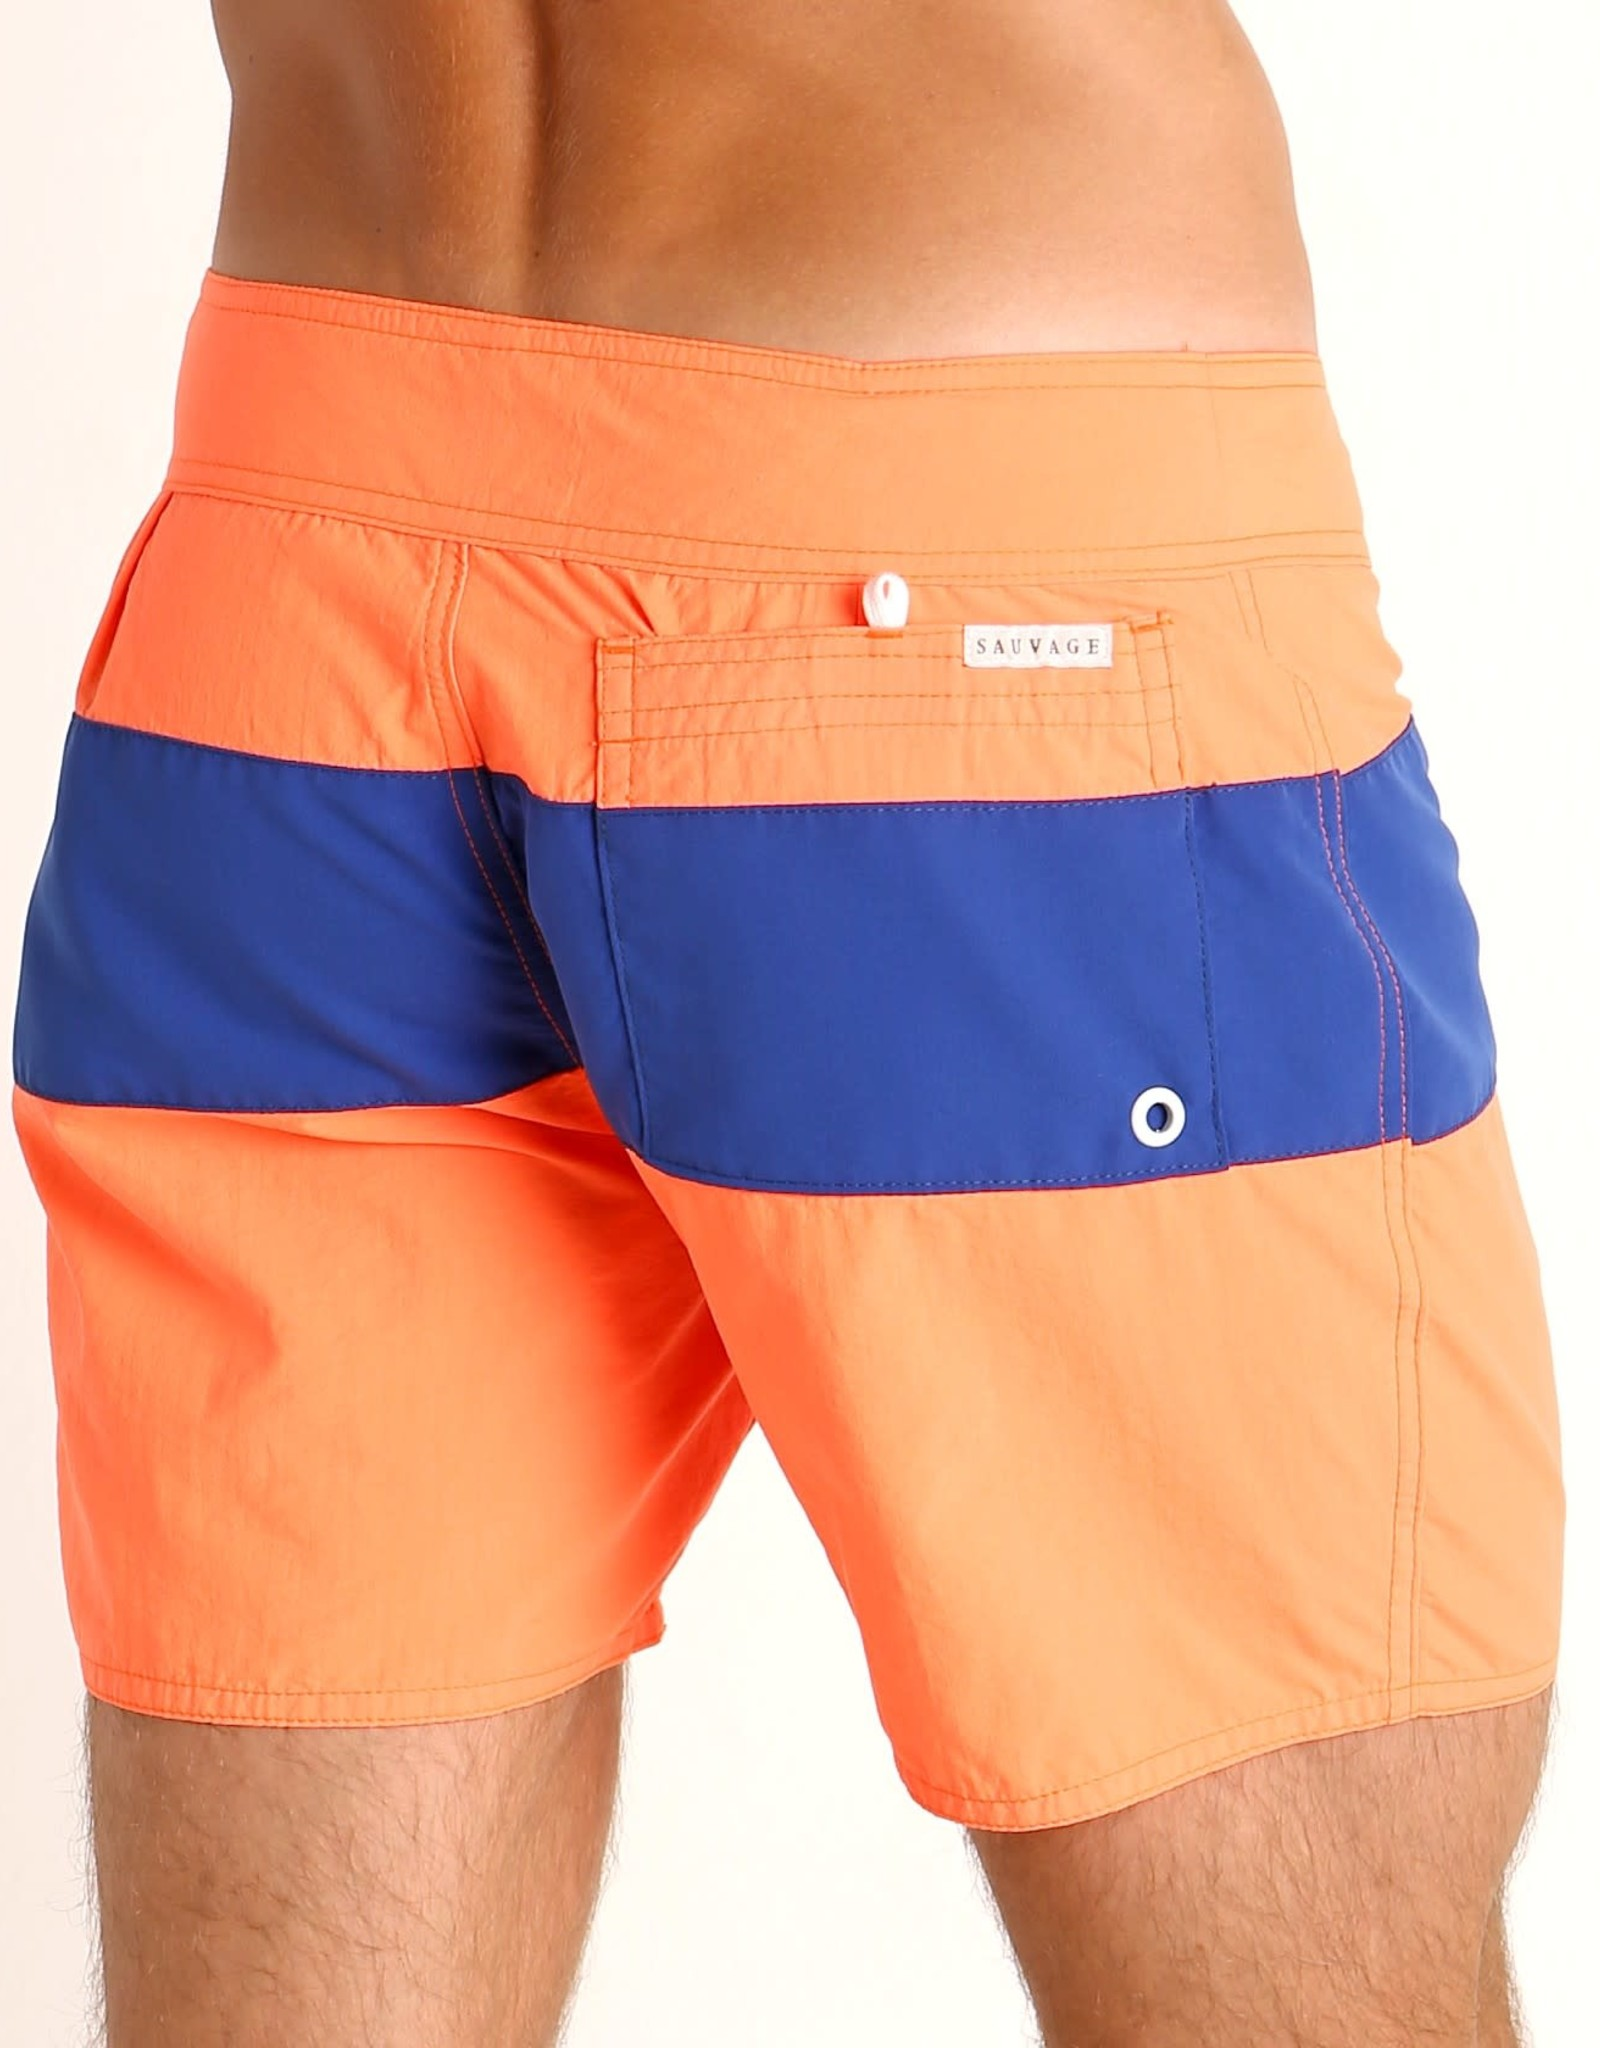 Sauvage Miami Brights Board Shorts